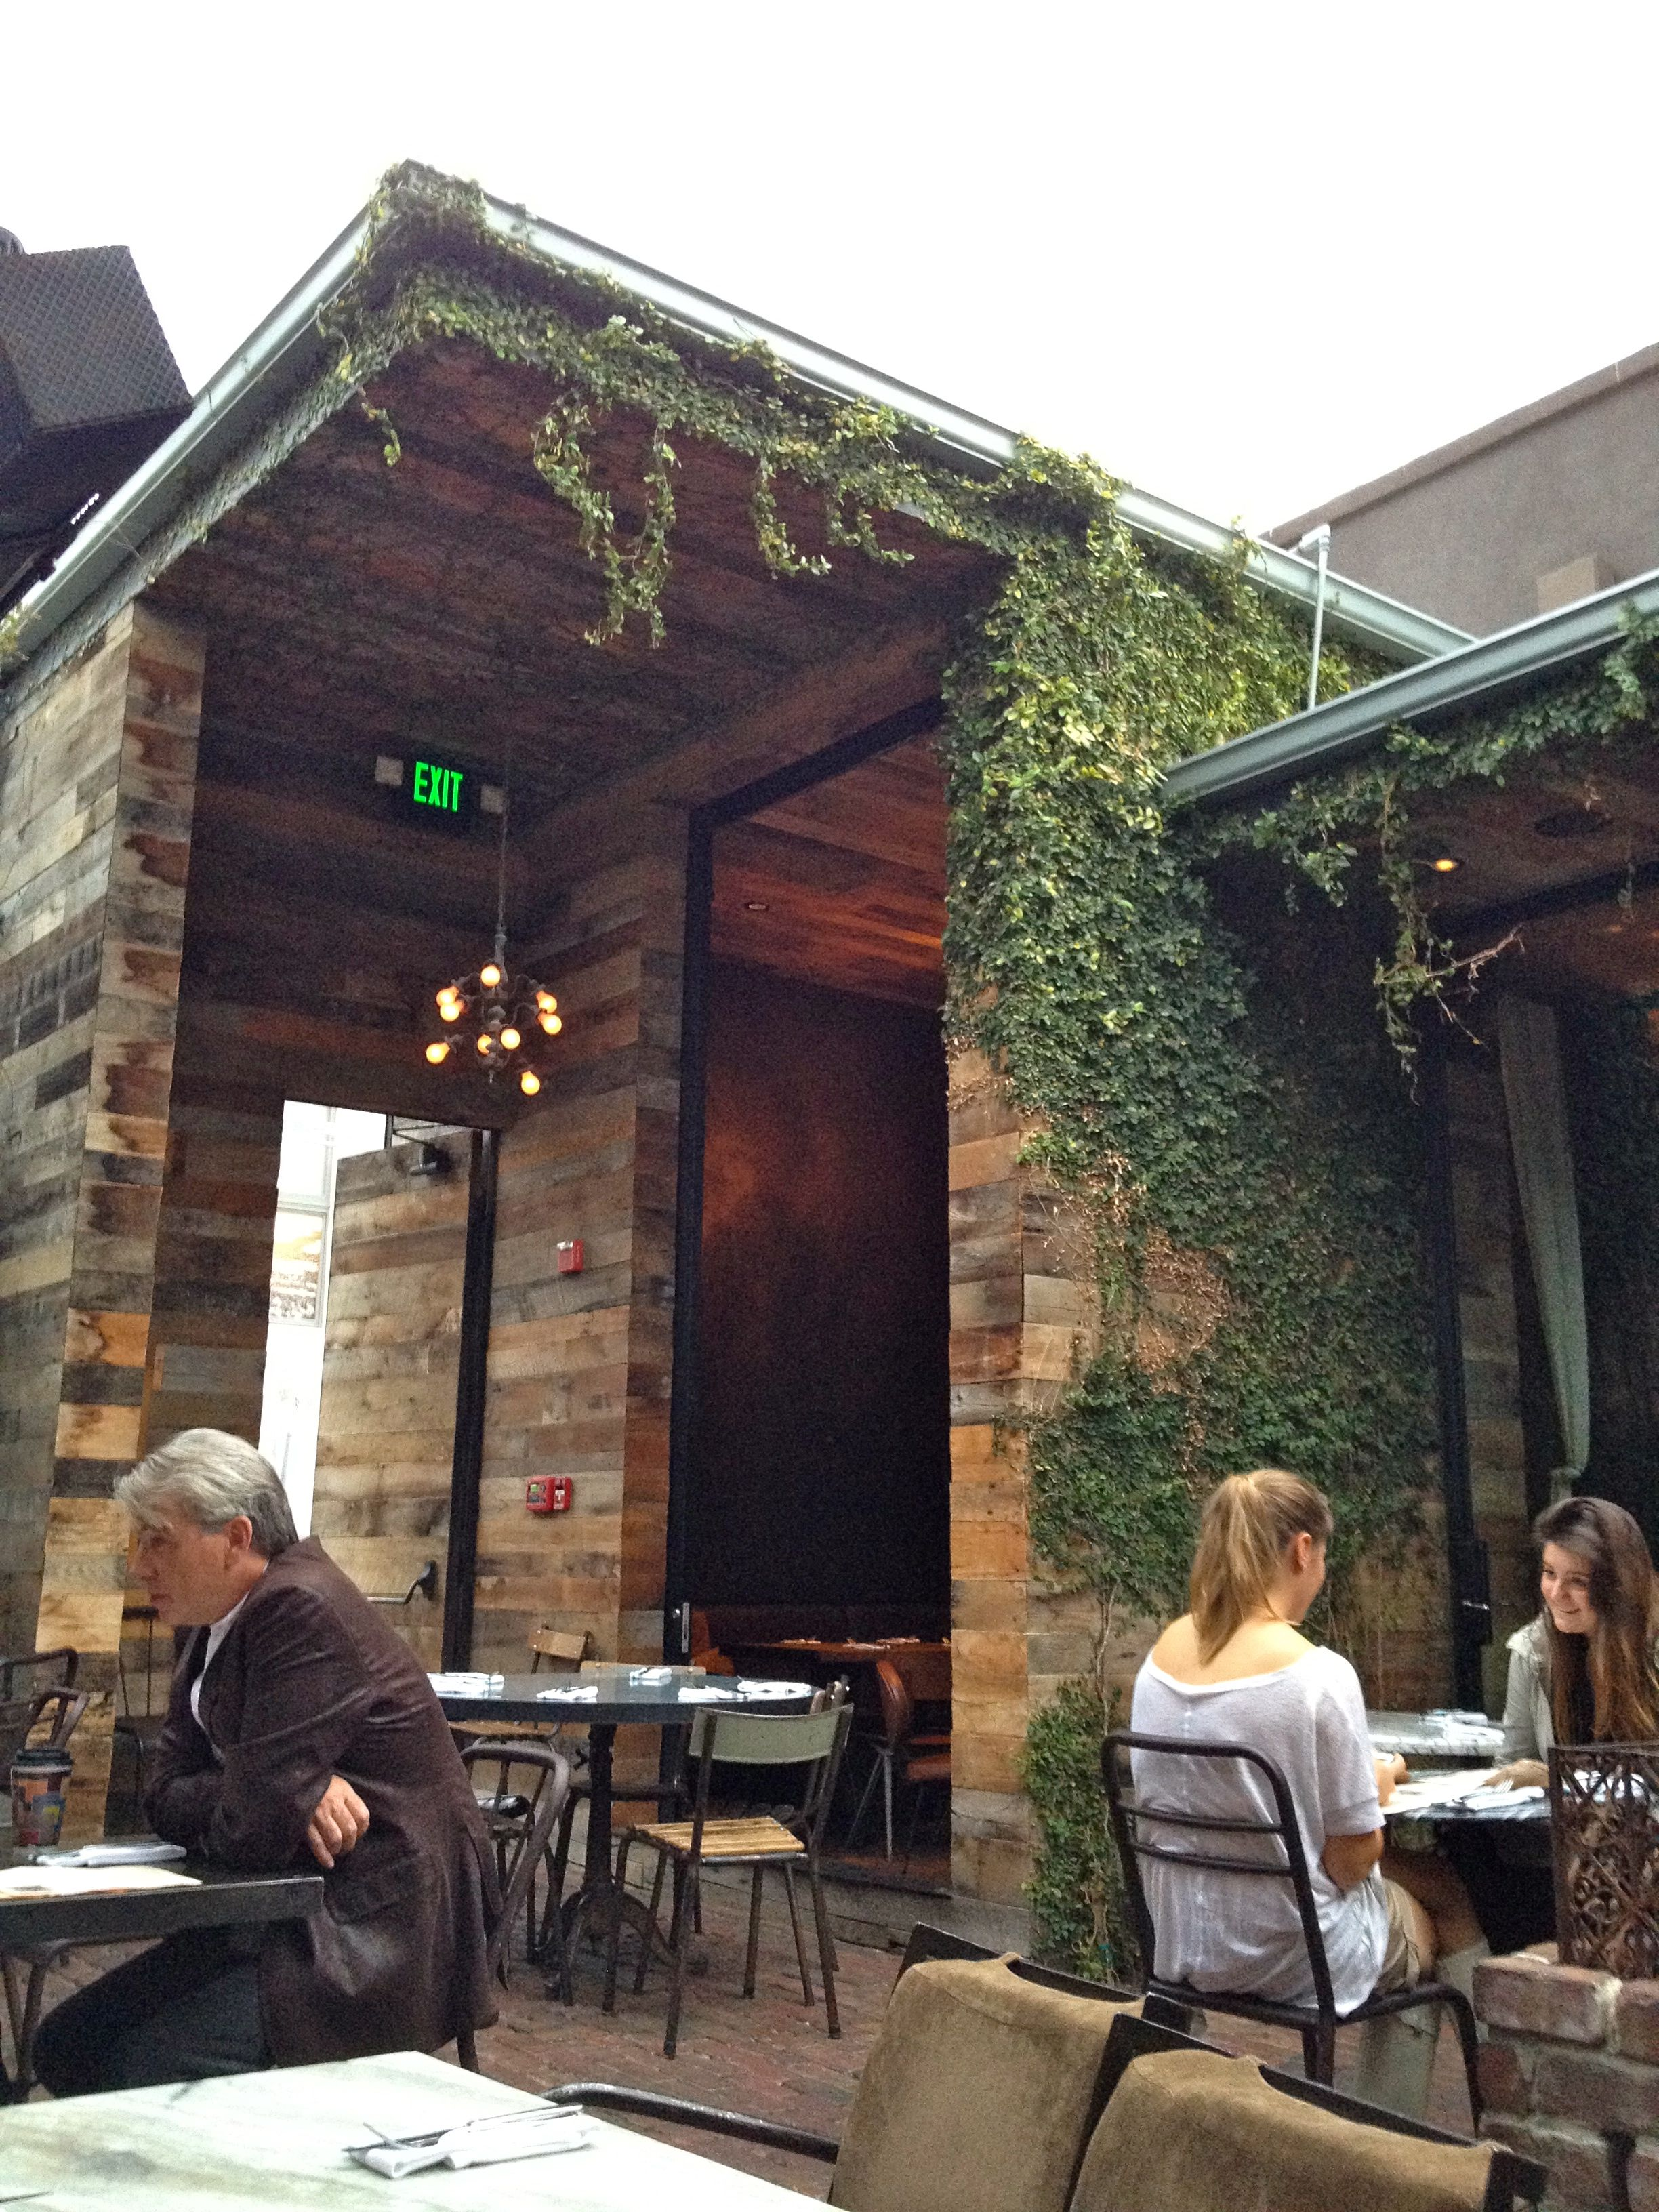 Pin By Caroline Wolf On Outdoor Spaces Landscaping Outdoor Restaurant Outdoor Seating Areas Restaurant Design